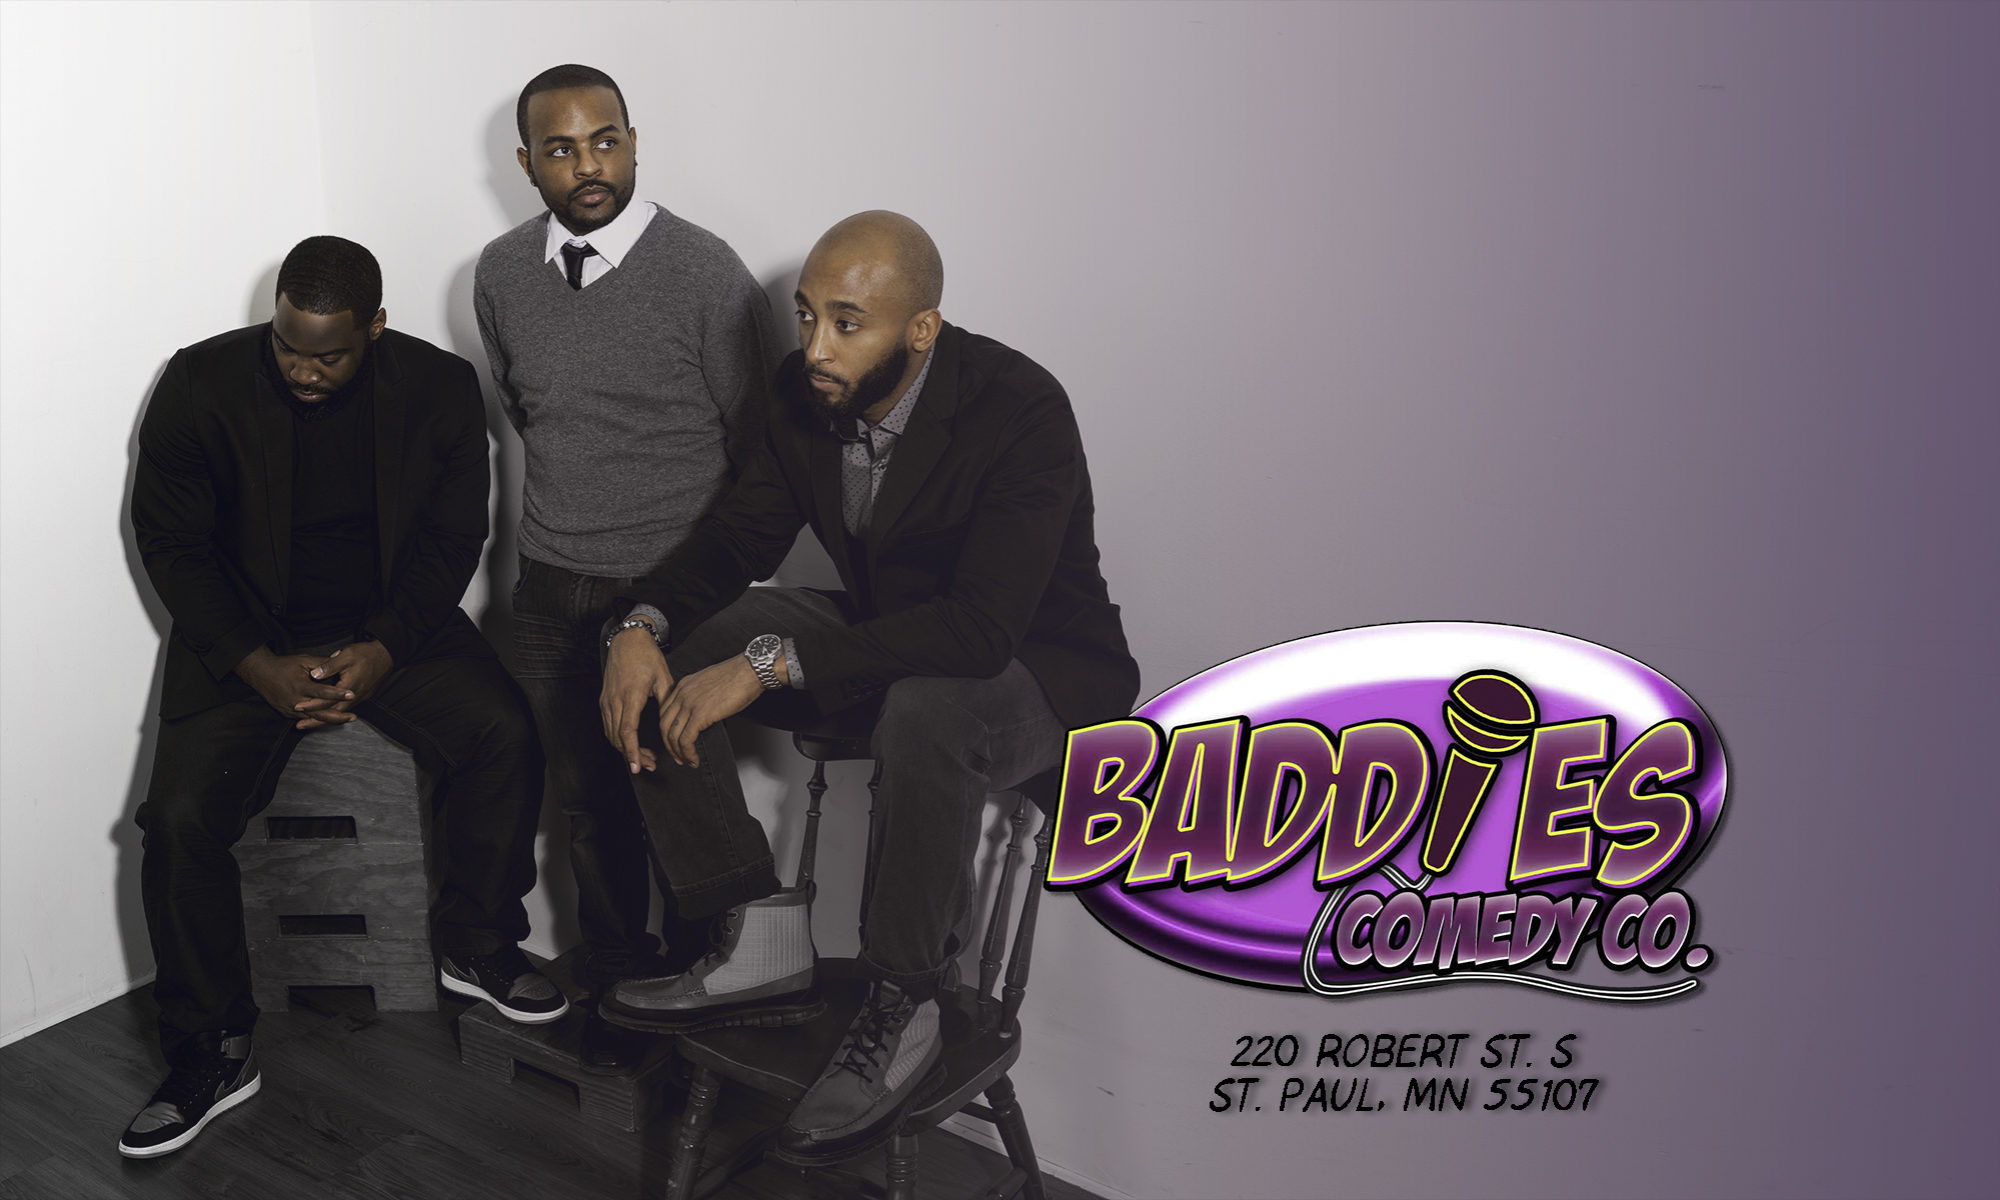 Baddies Comedy Co.